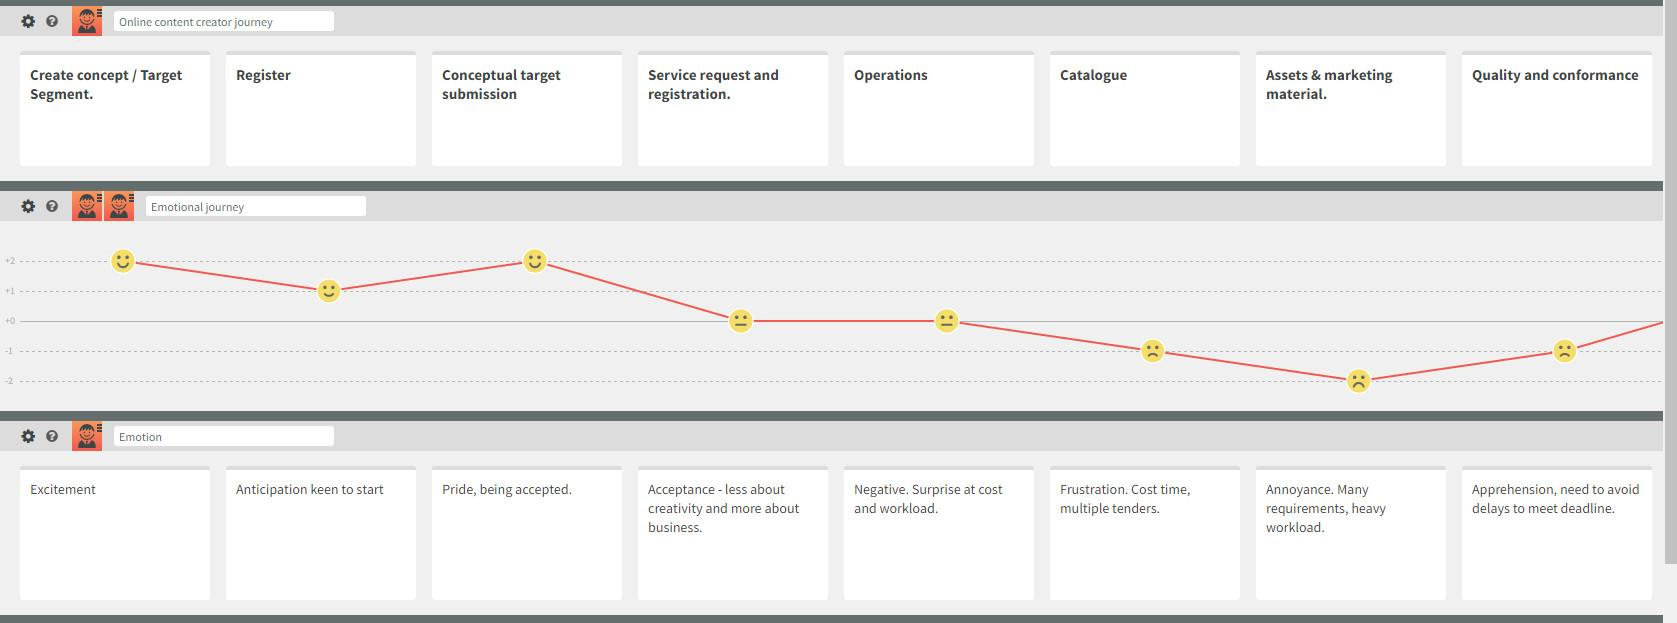 This is a journey map created in Smaply that visualizes the experience of an online content creator.